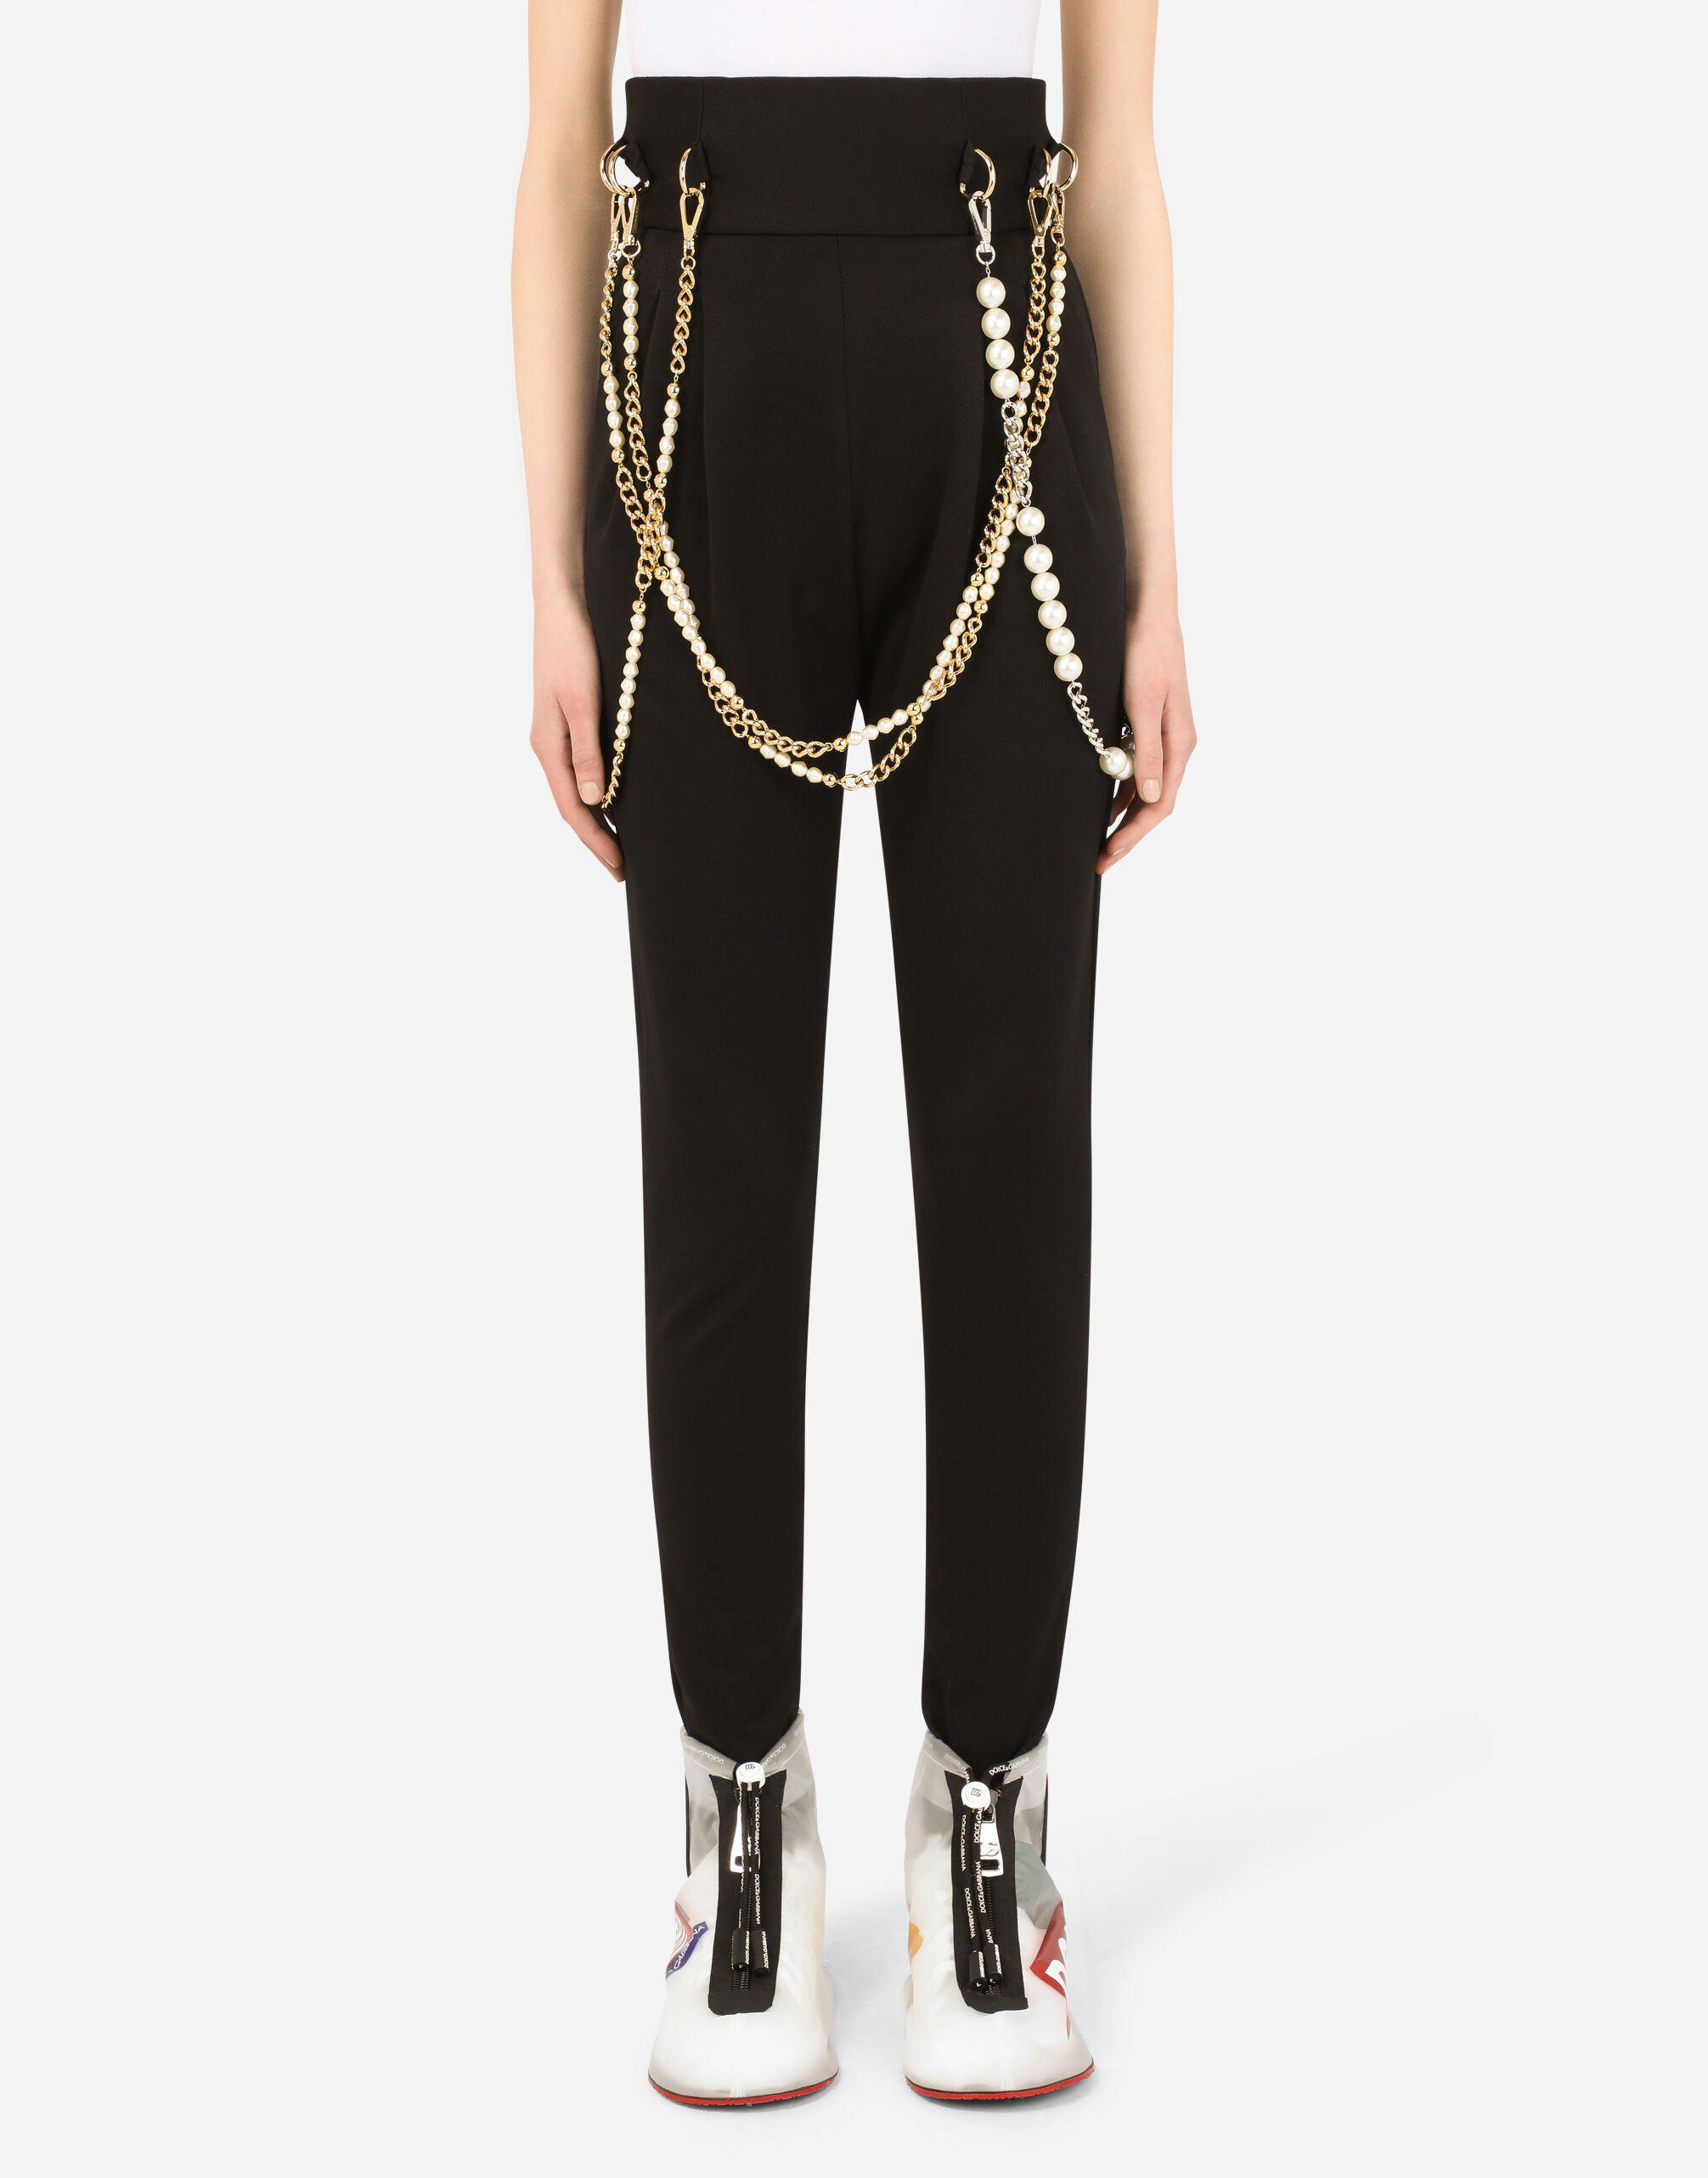 High-waisted cavalry pants with chains